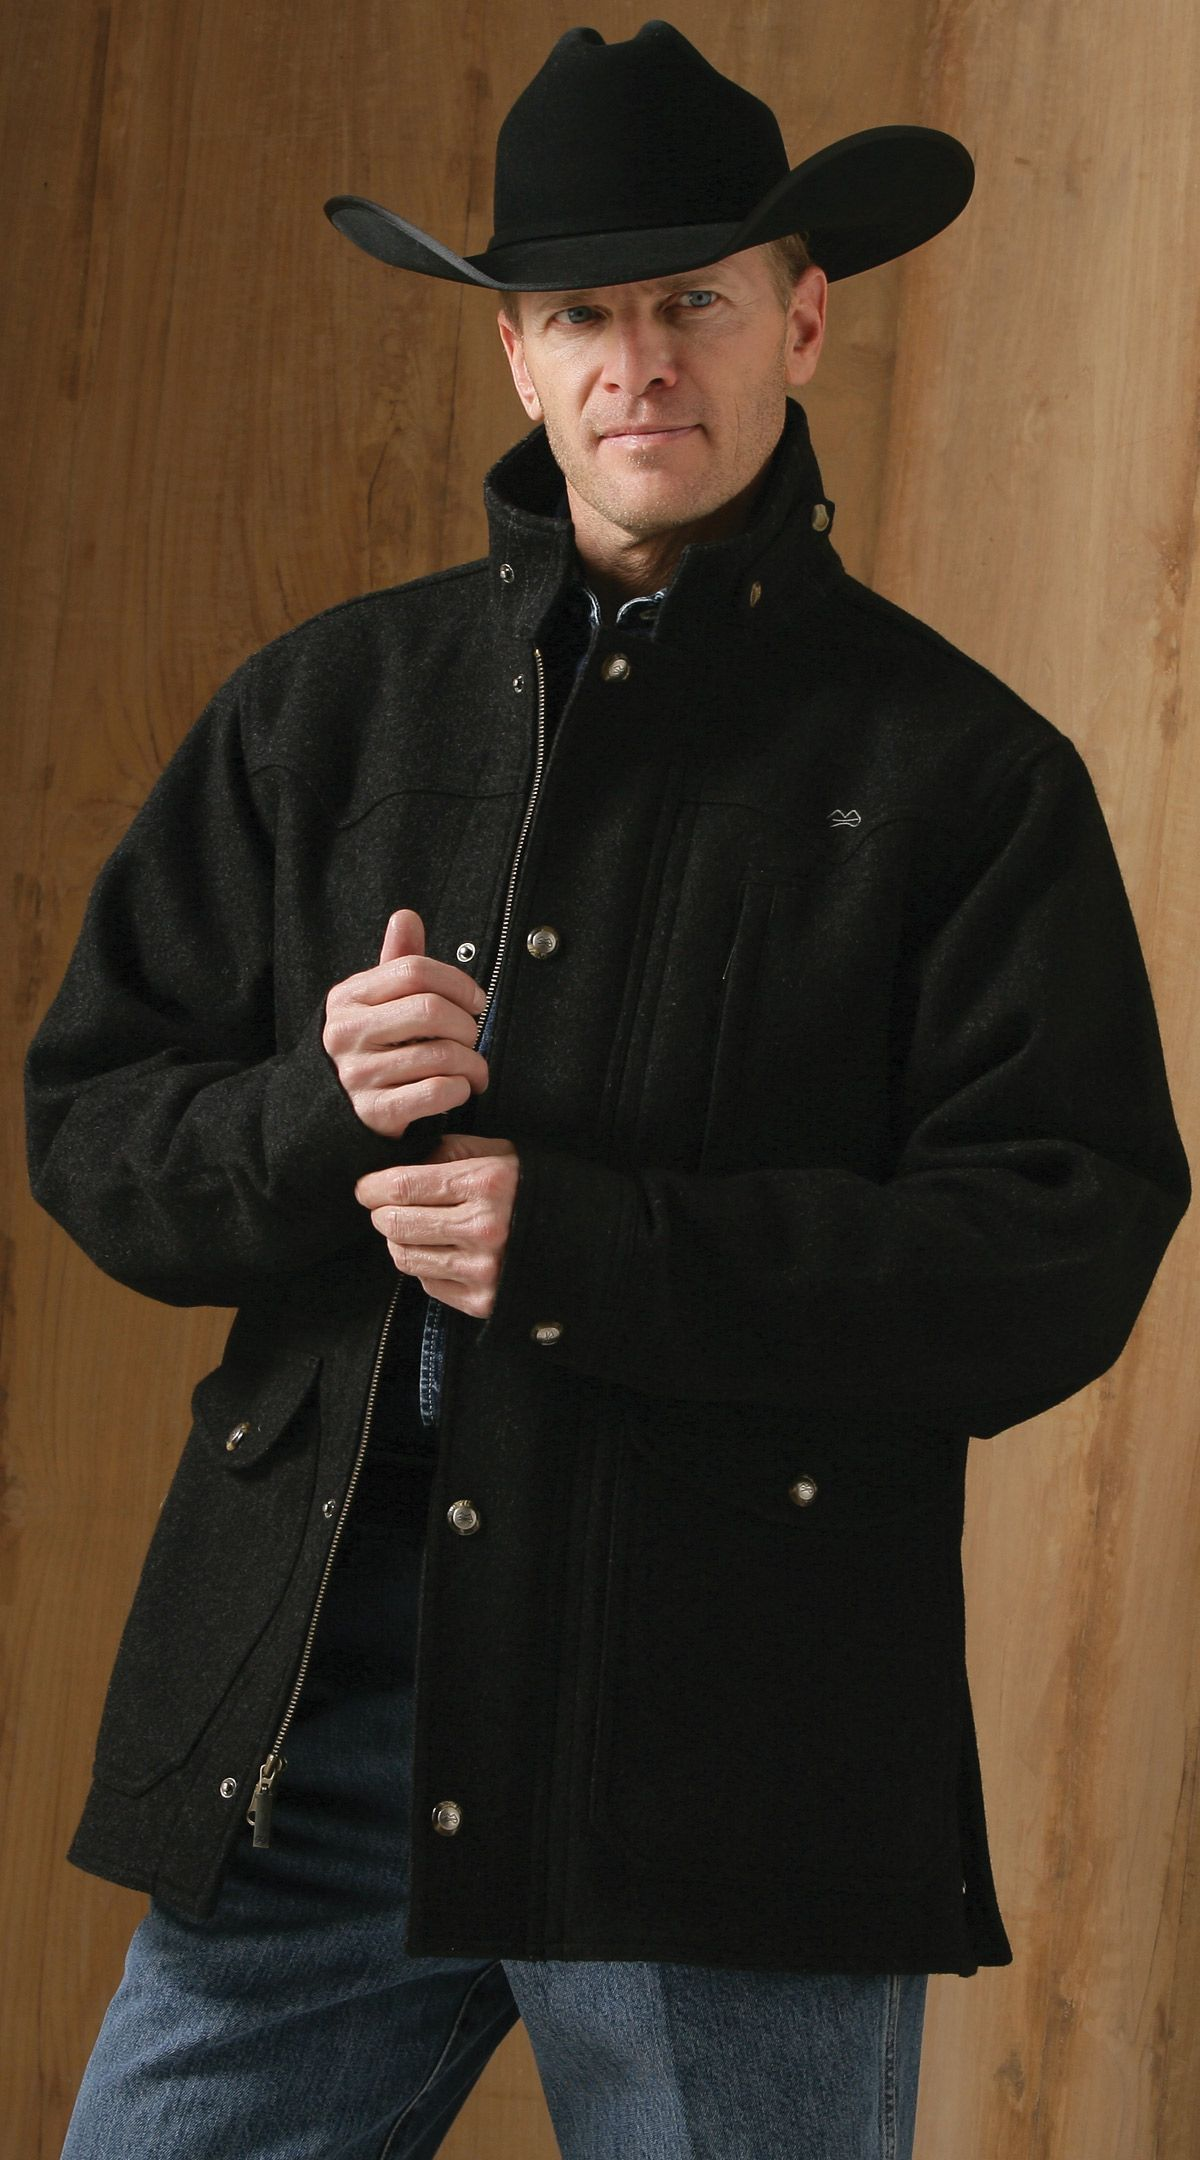 Men S Wool Jacket For The Deck Cowboy Outfit For Men Cowboy Outfits Wool Jacket [ 2160 x 1200 Pixel ]